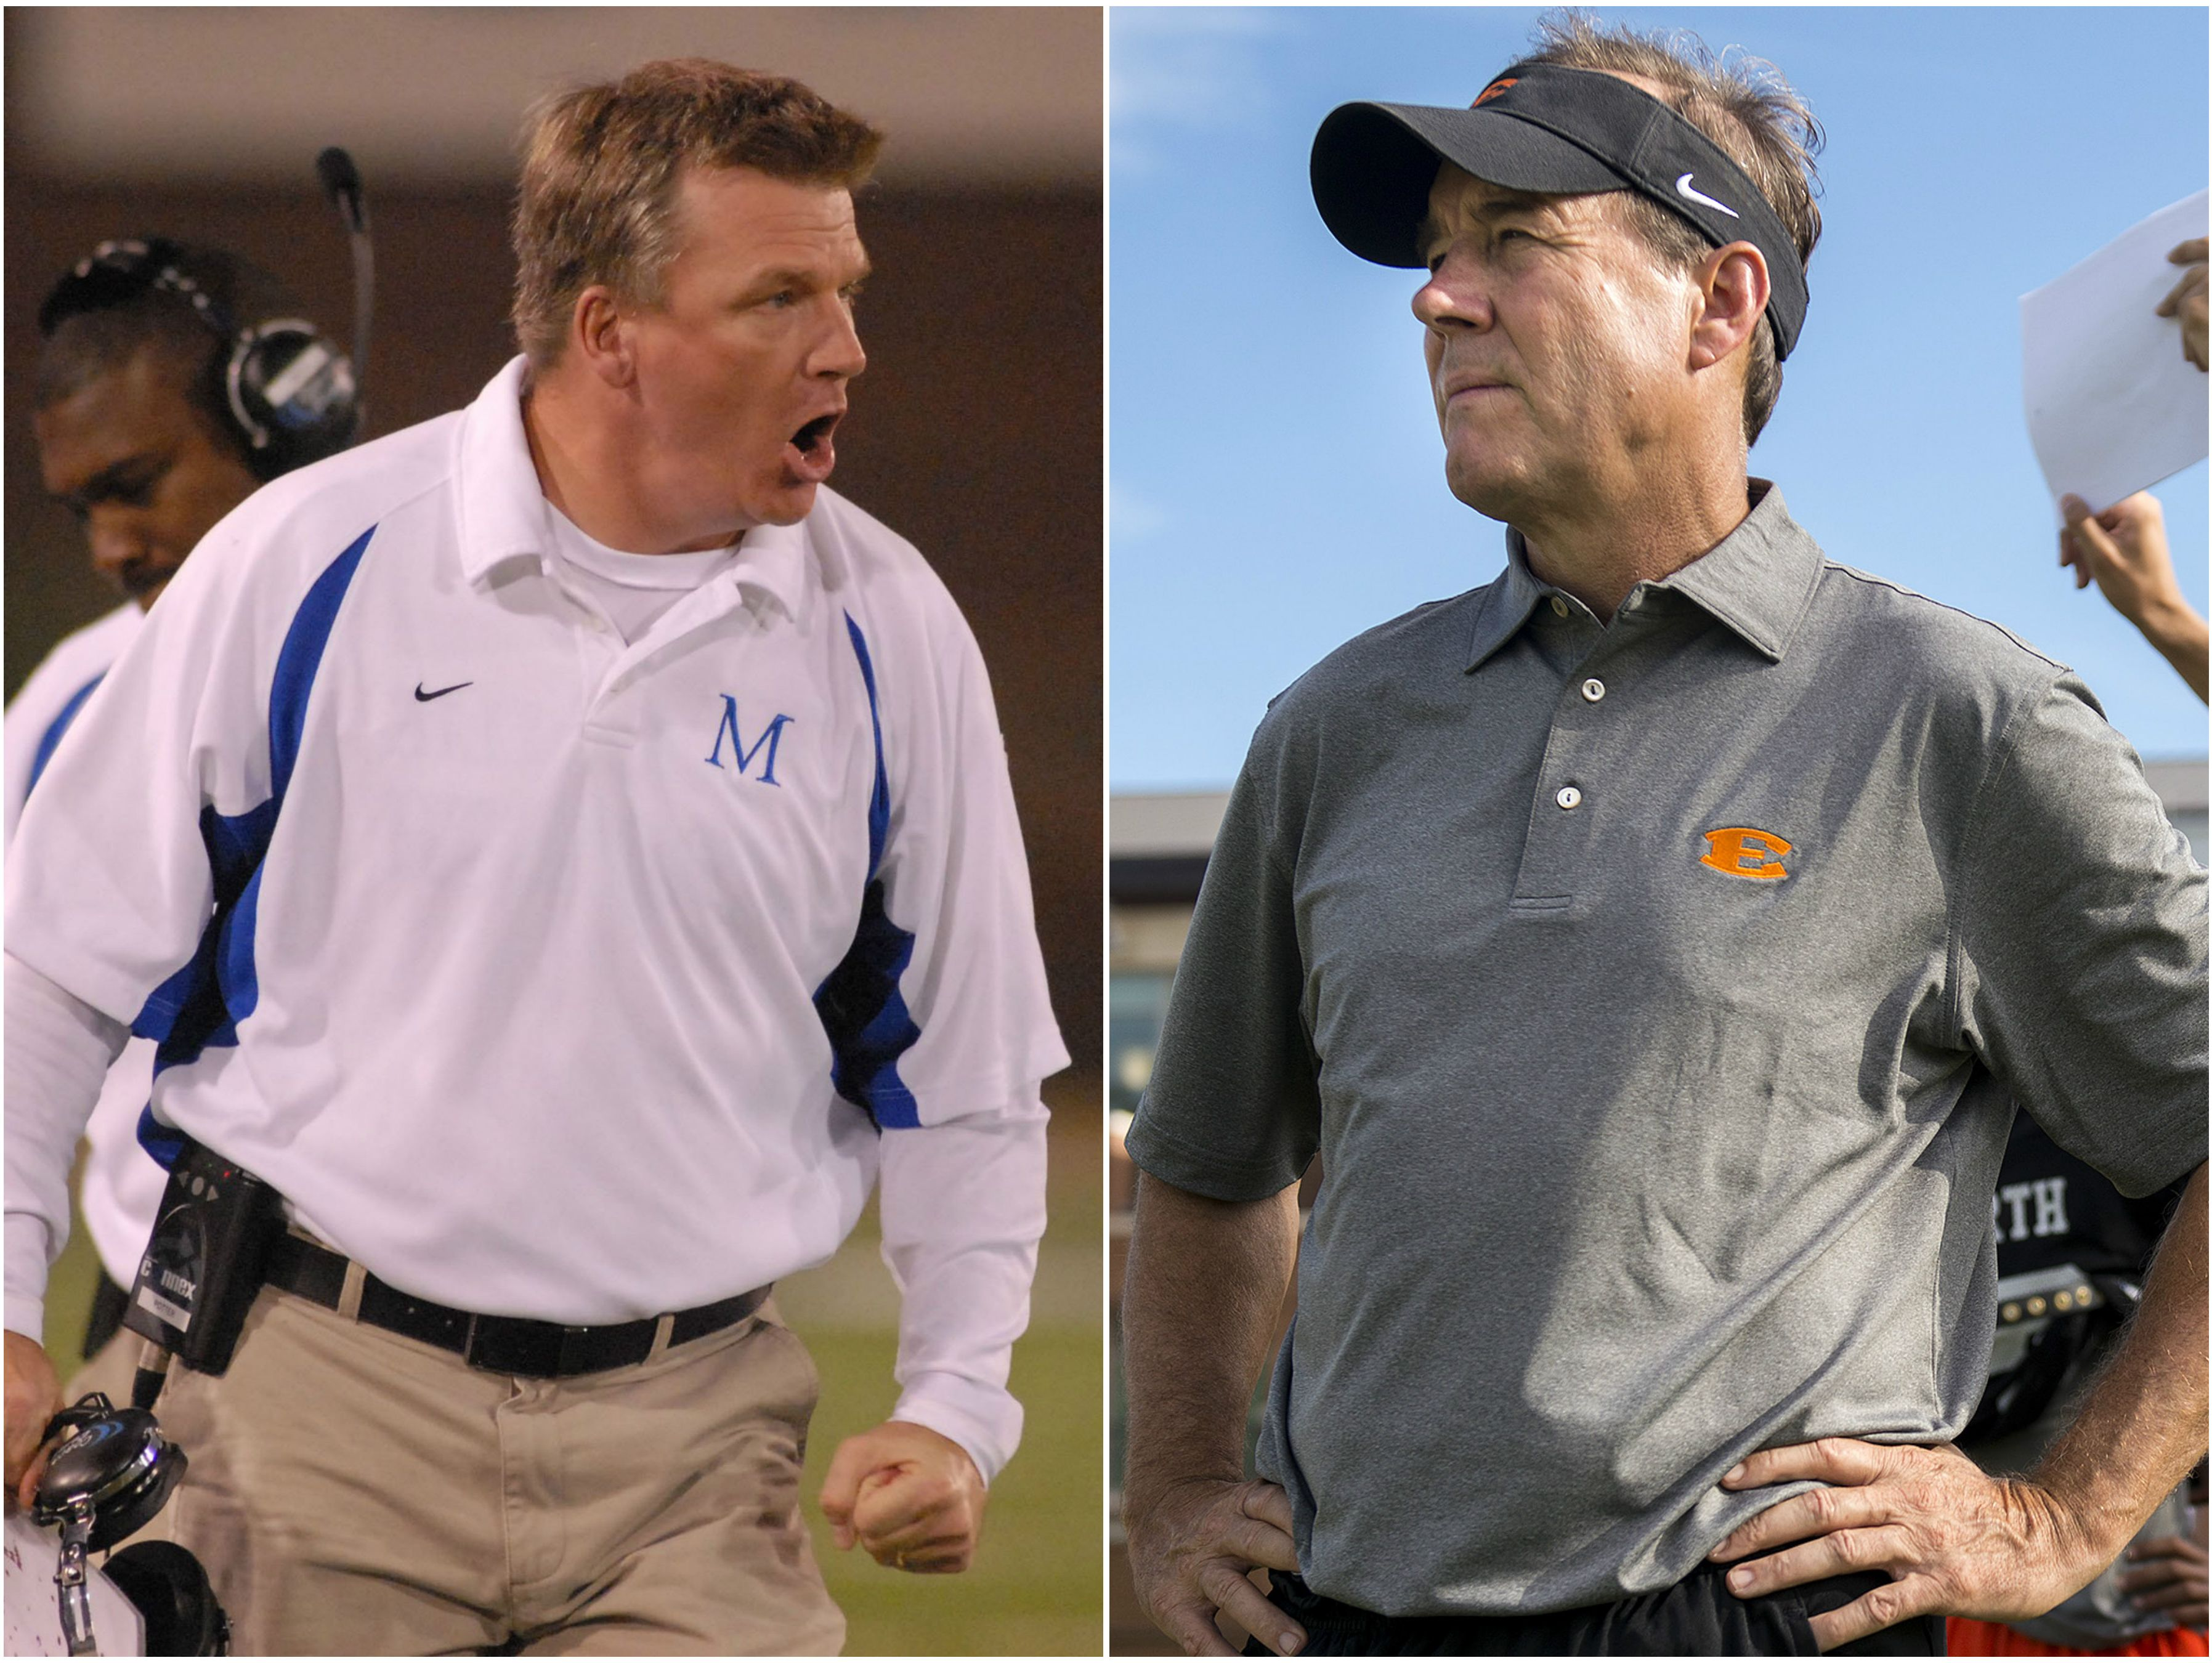 McCallie coach Ralph Potter (left) and Ensworth coach Ricky Bowers (right)